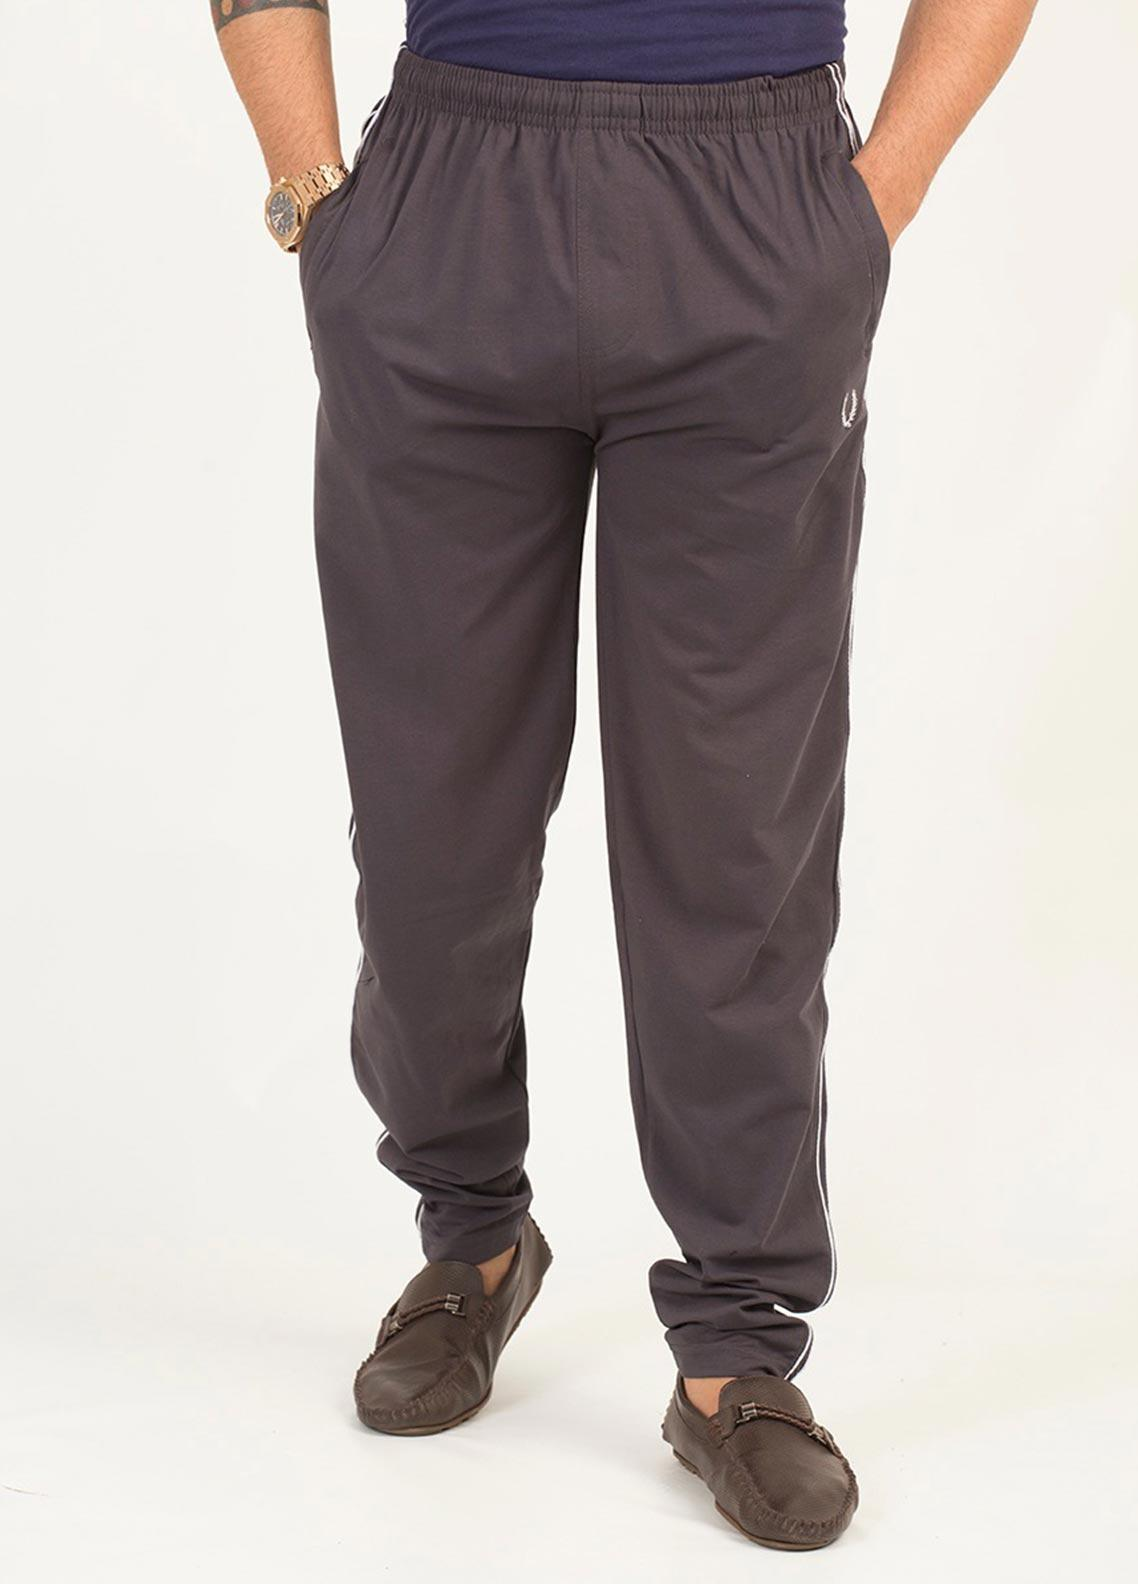 UC Clothing Lycra Casual Men Trousers -  02 Slate